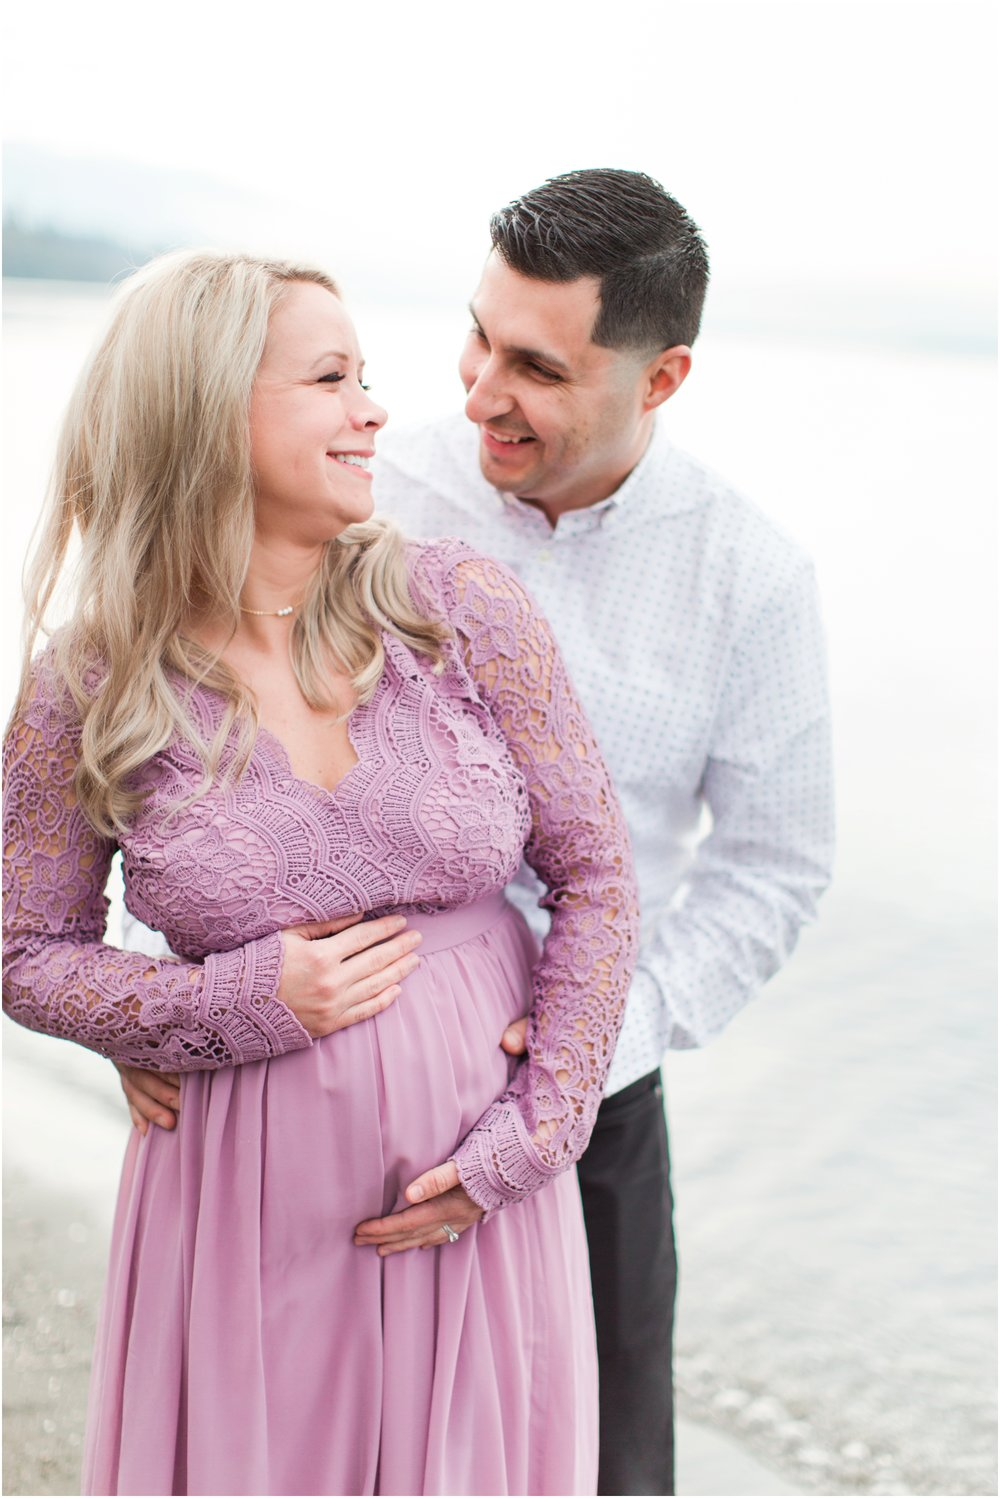 Maternity photos by Briana Calderon Photography based in the Greater Seattle & Tacoma, WA_0988.jpg